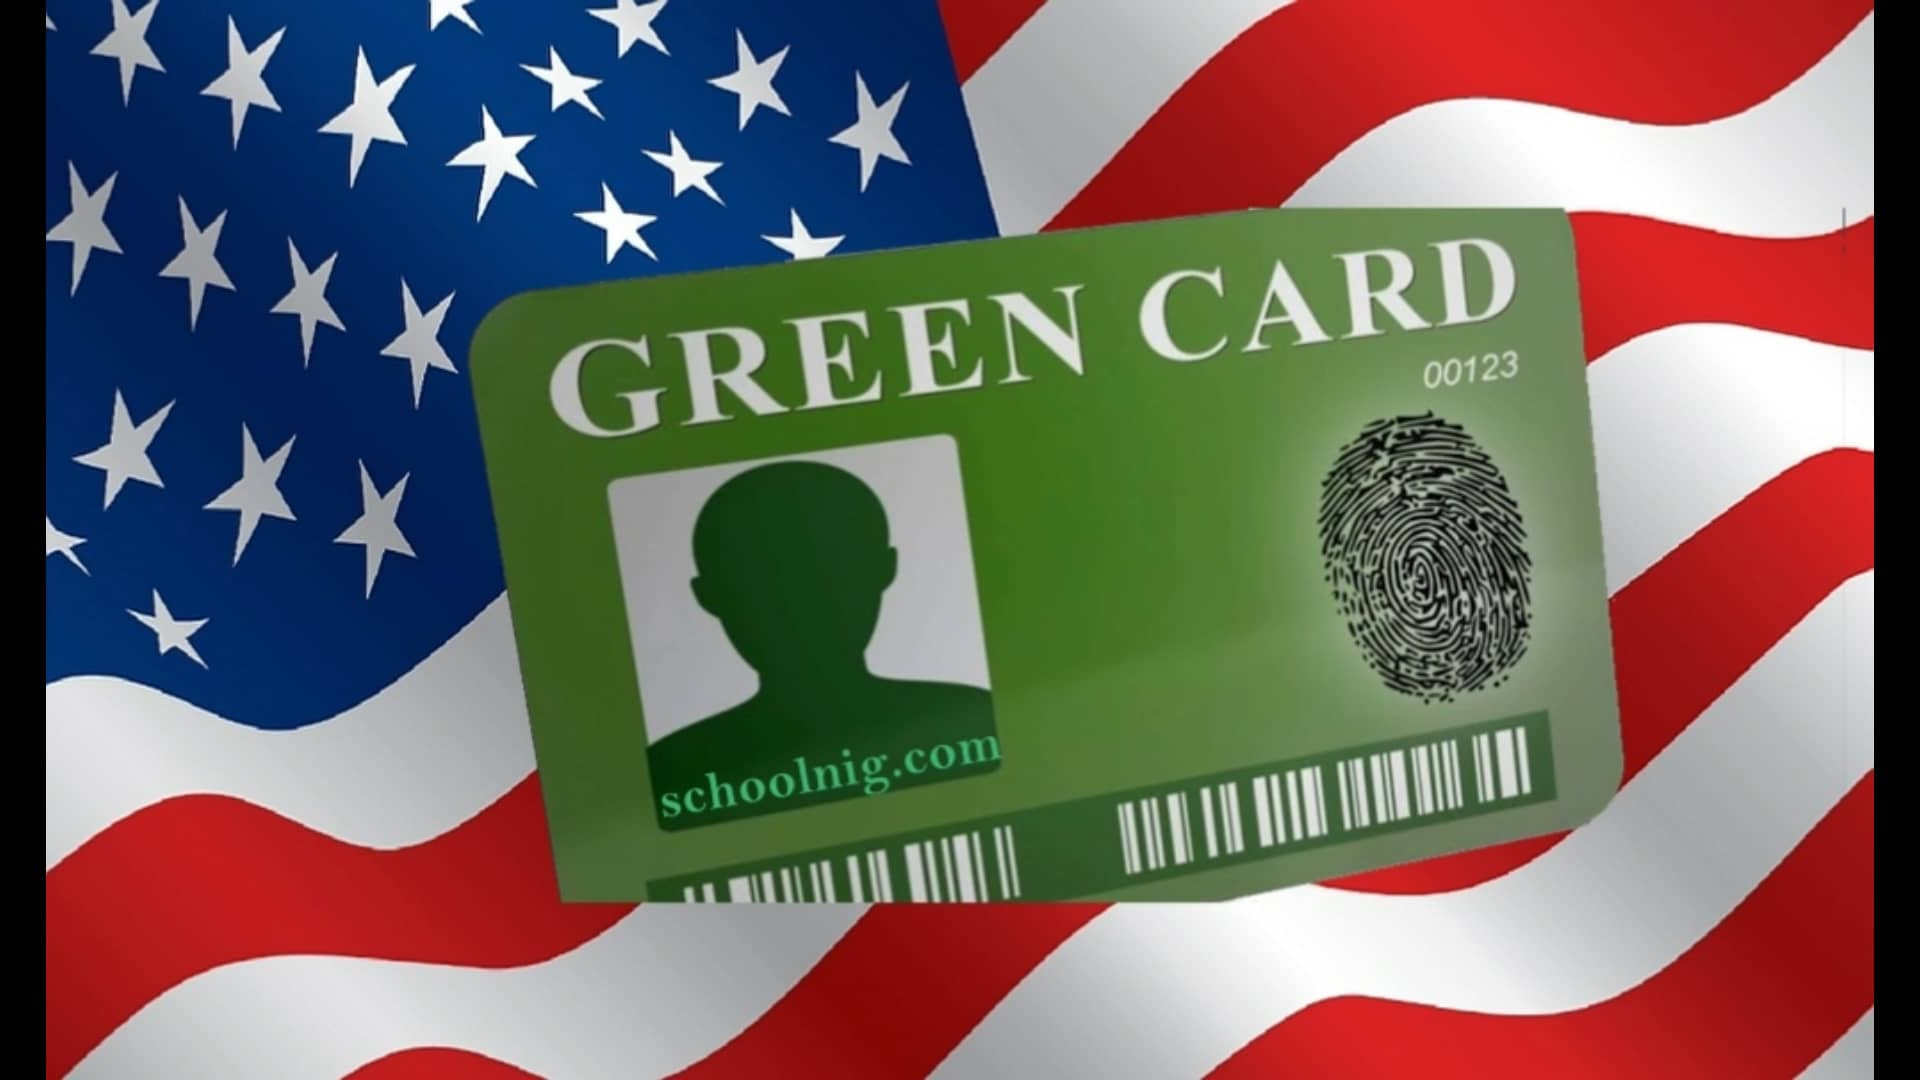 If-it-seems-like-your-citizenship-or-green-card-is-taking-too-long-here-s-how-to-check-1(1).jpg